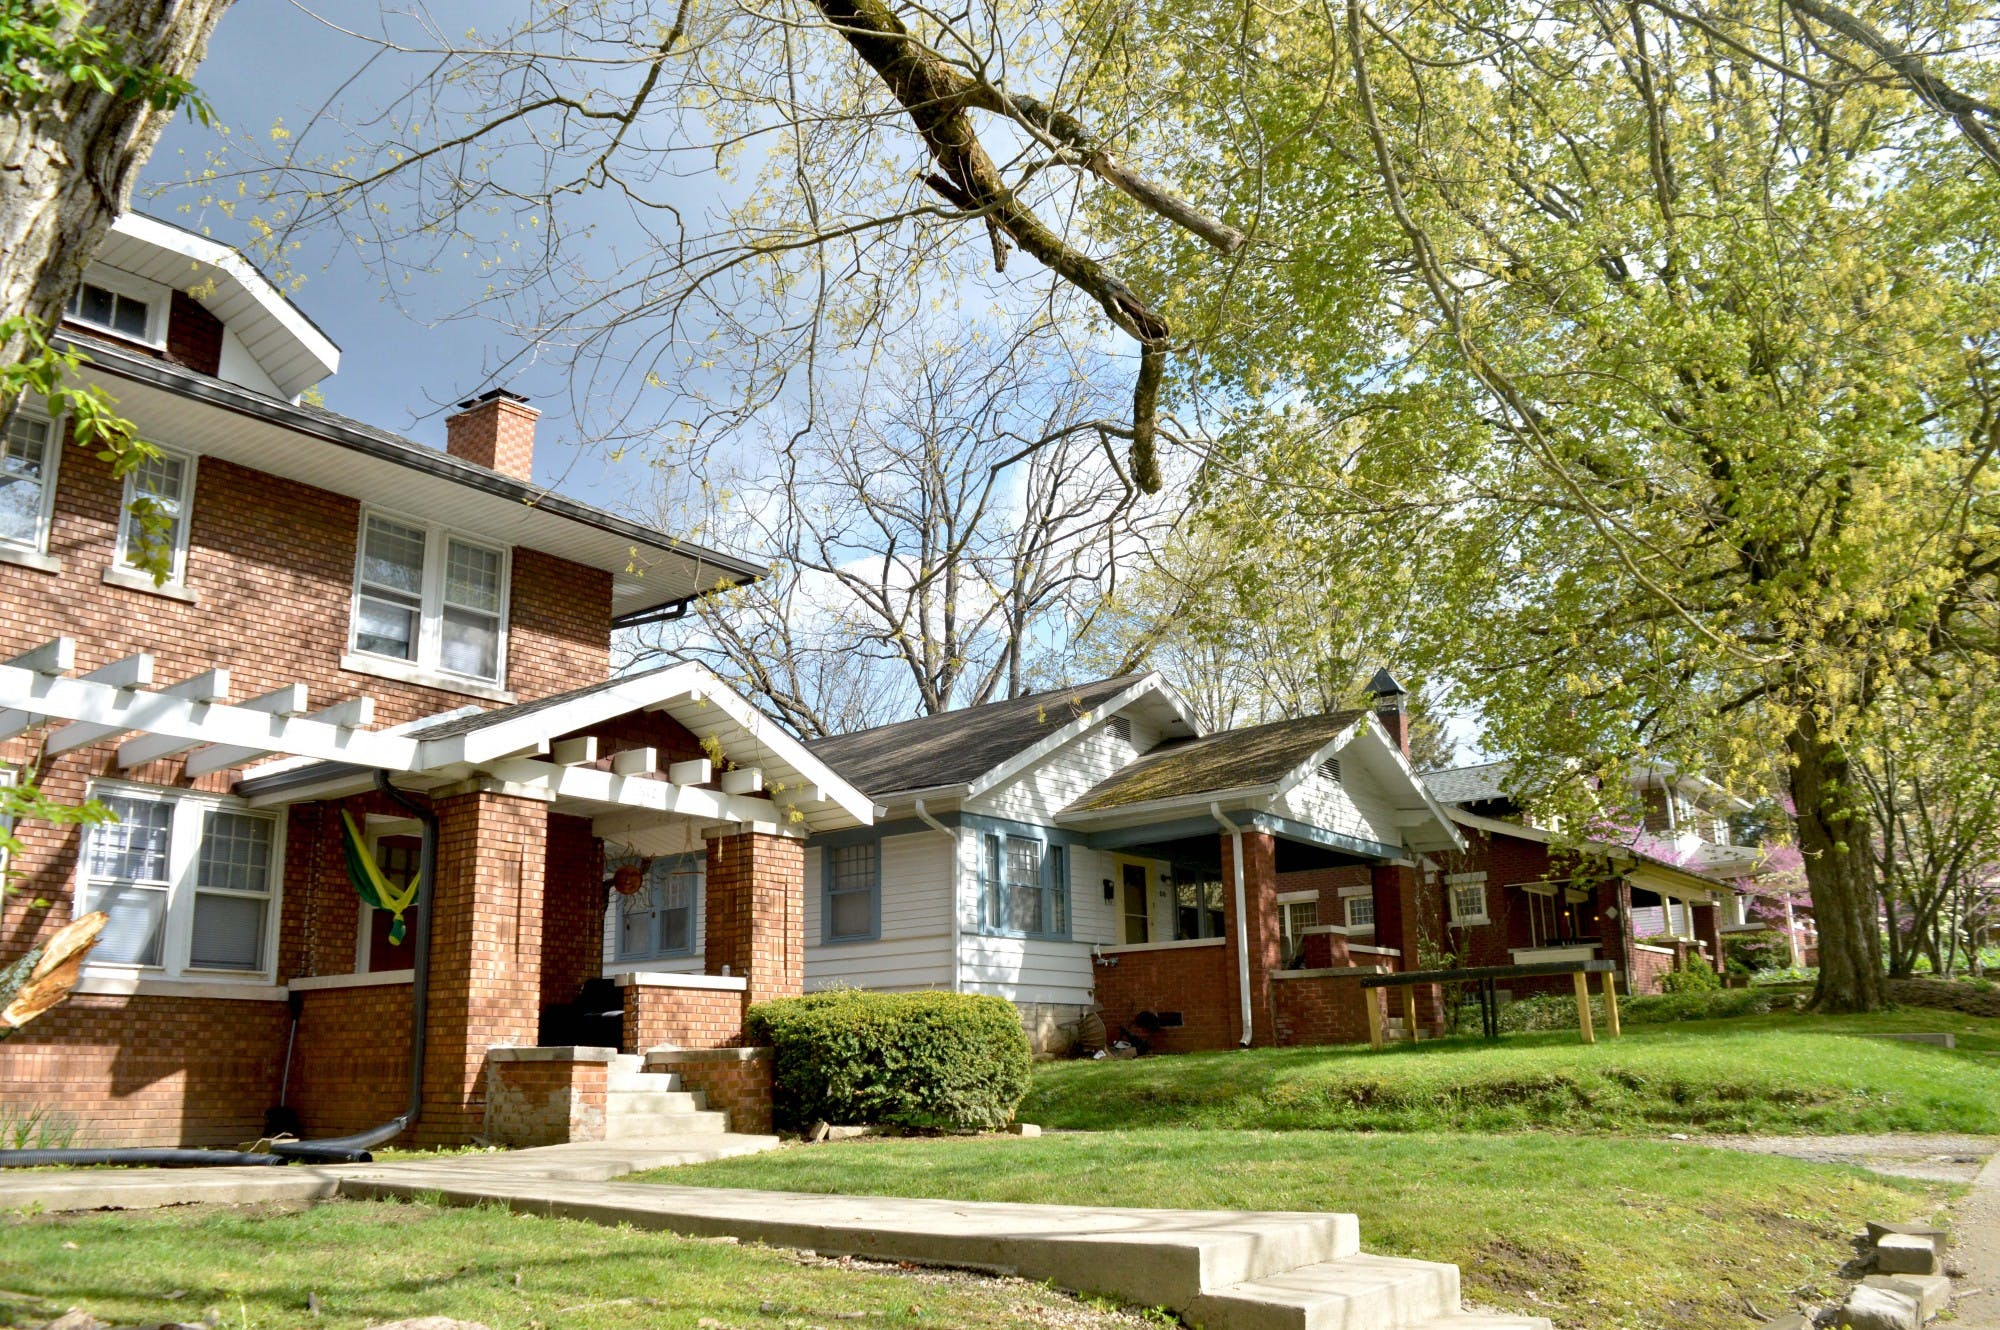 Houses in Maple Heights neighborhood appear April 21 in Bloomington. Maple Heights is one of the multiple core neighborhoods in Bloomington. Residents have raised concerns about increased density, students and quality of life, if the UDO amendments are passed.